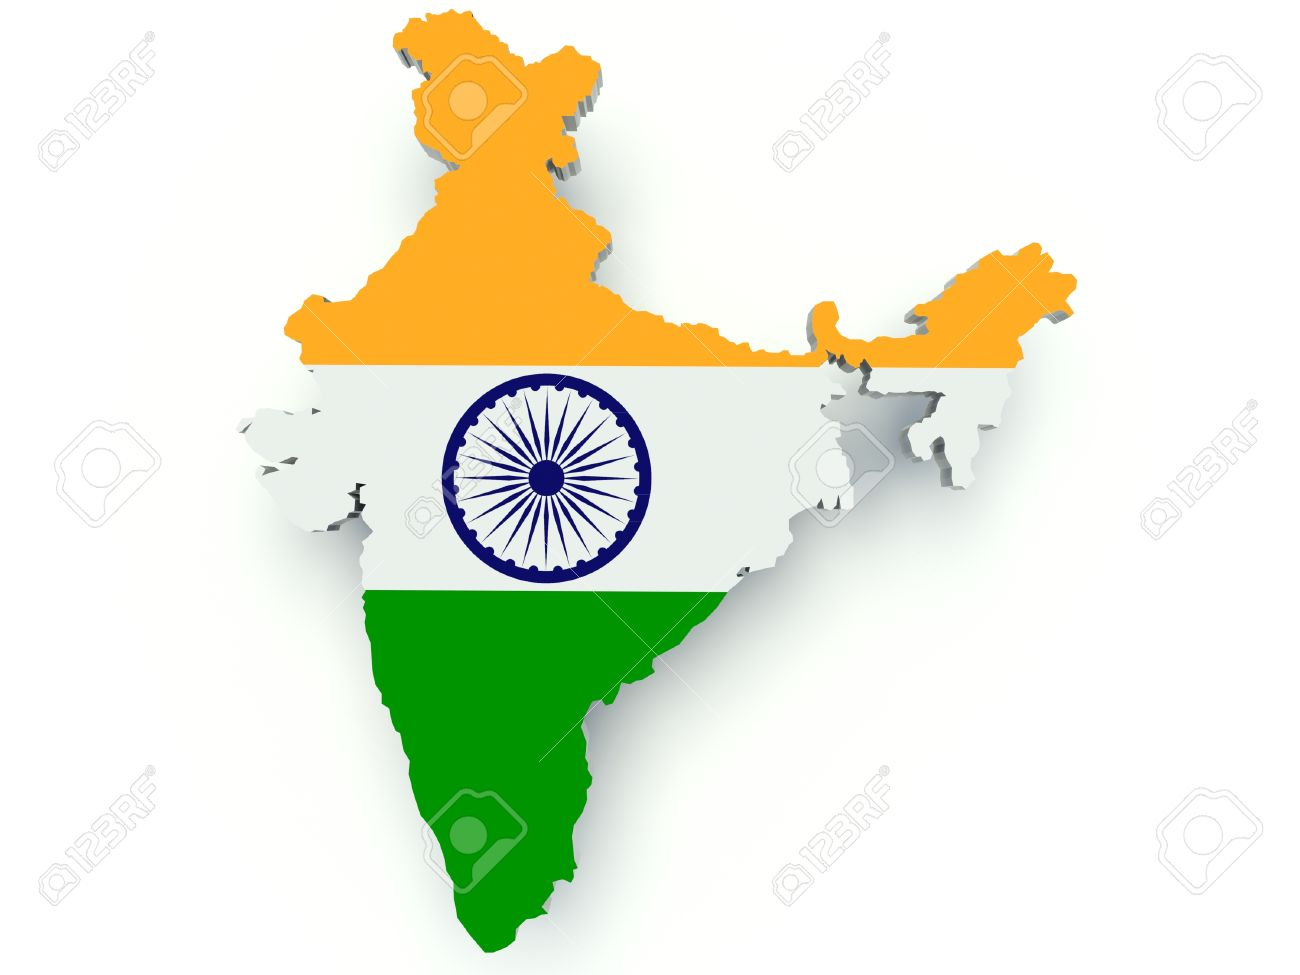 colour picture of indian map Map Of India With Flag Colors 3d Render Illustration Stock Photo colour picture of indian map